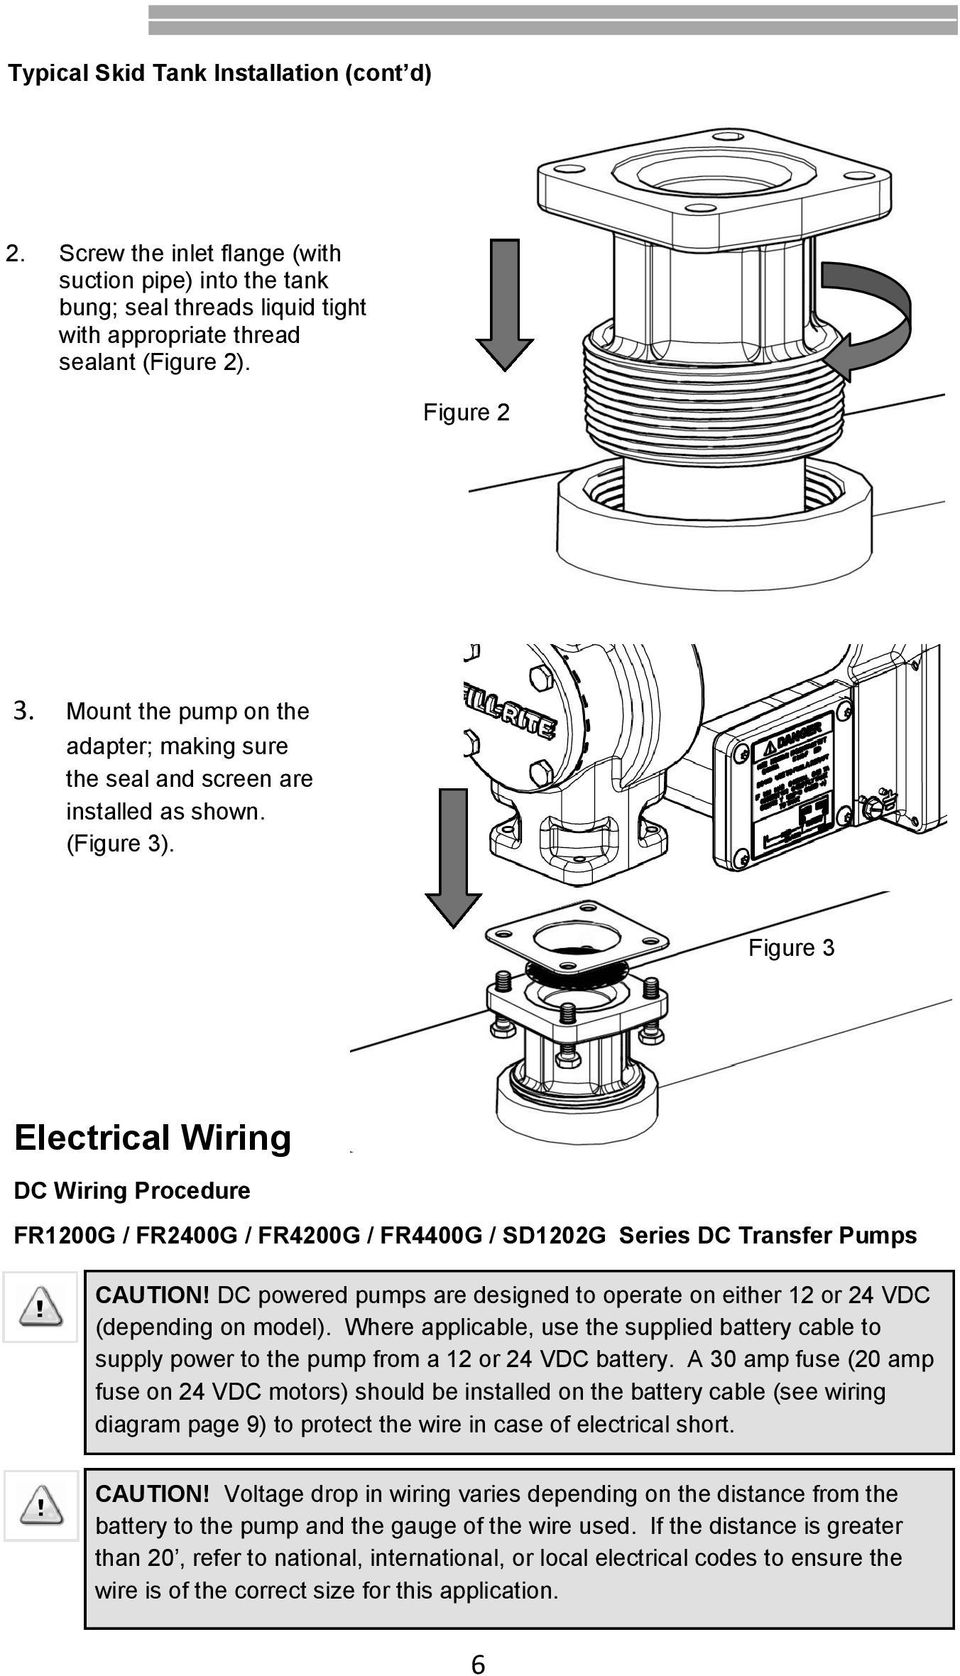 Fr600g Series Ac Transfer Pumps Pdf In The Wiring Diagrams Shown This Thread How Do I Tell If Wires Figure 3 Electrical Dc Procedure Fr1200g Fr2400g Fr4200g Fr4400g Sd1202g